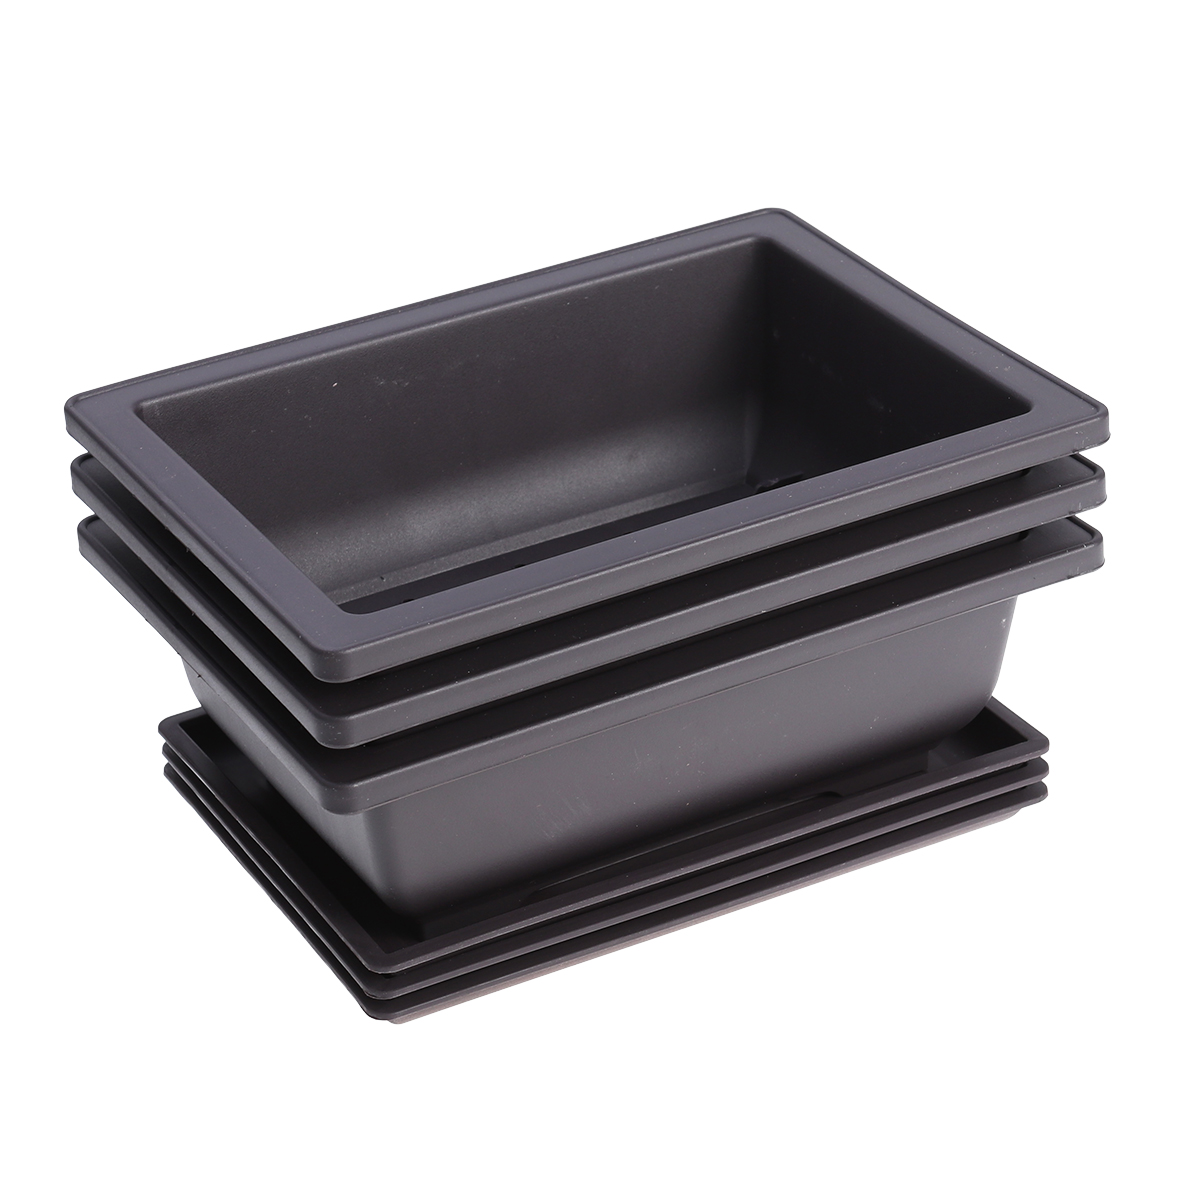 3pcs Plastic Flowerpot Square Flower Bonsai Bowl Nursery Basin Pots Plant Tray With Pallets For Garden Decoration